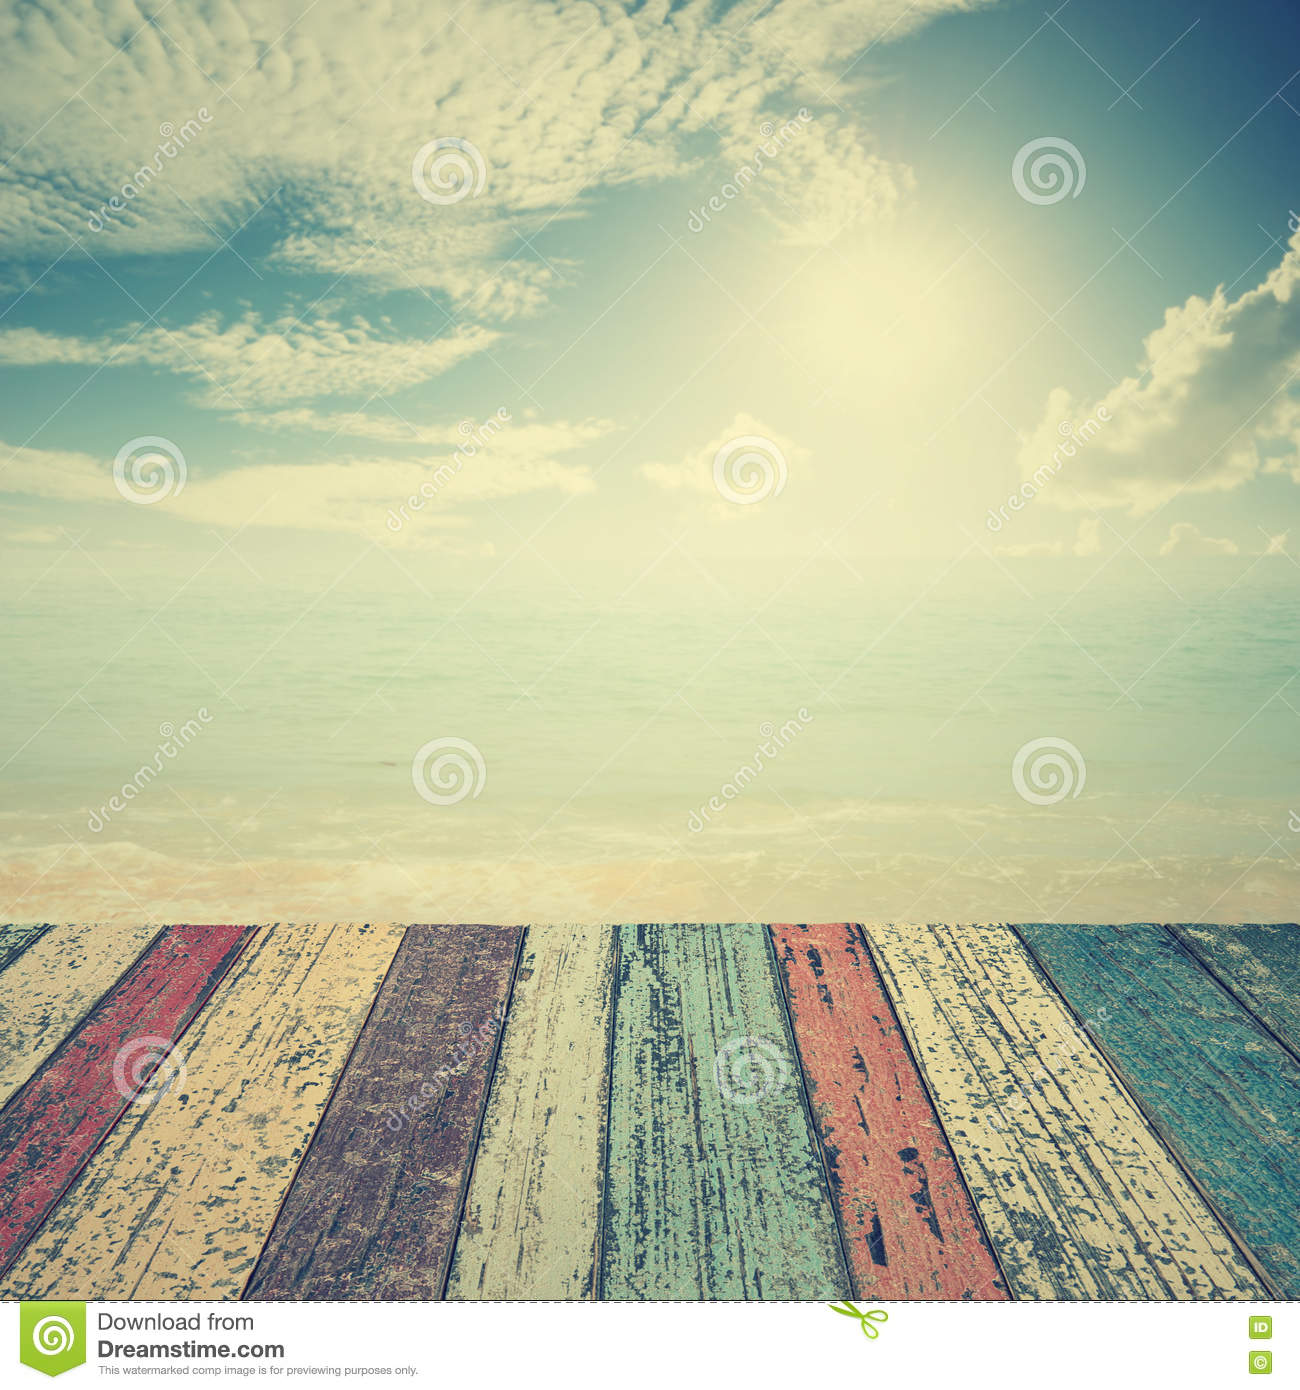 Vintage Beach Background Stock Photo 112981333: Wood Floor On Beach Sea And Blue Sky For Background Stock